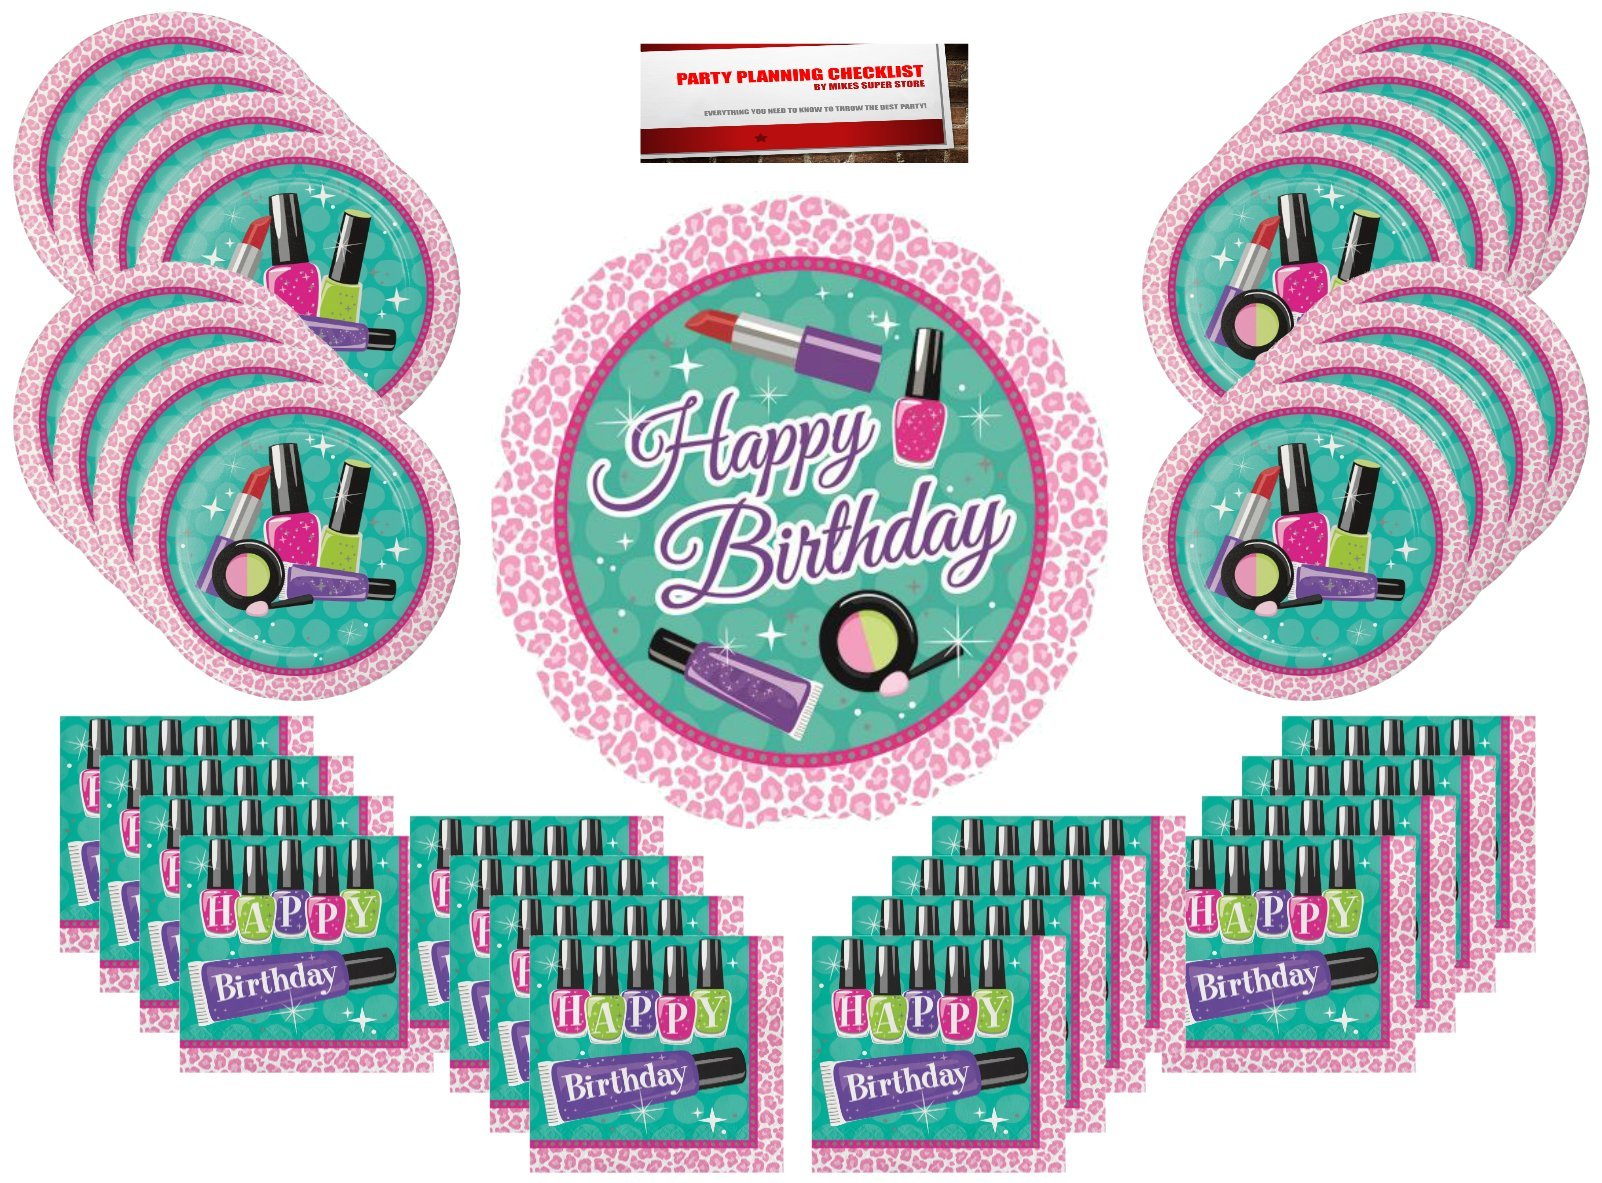 Sparkle Spa Party Supplies Bundle Pack for 16 guests (Bonus 17 Inch Balloon Plus Party Planning Checklist by Mikes Super Store)